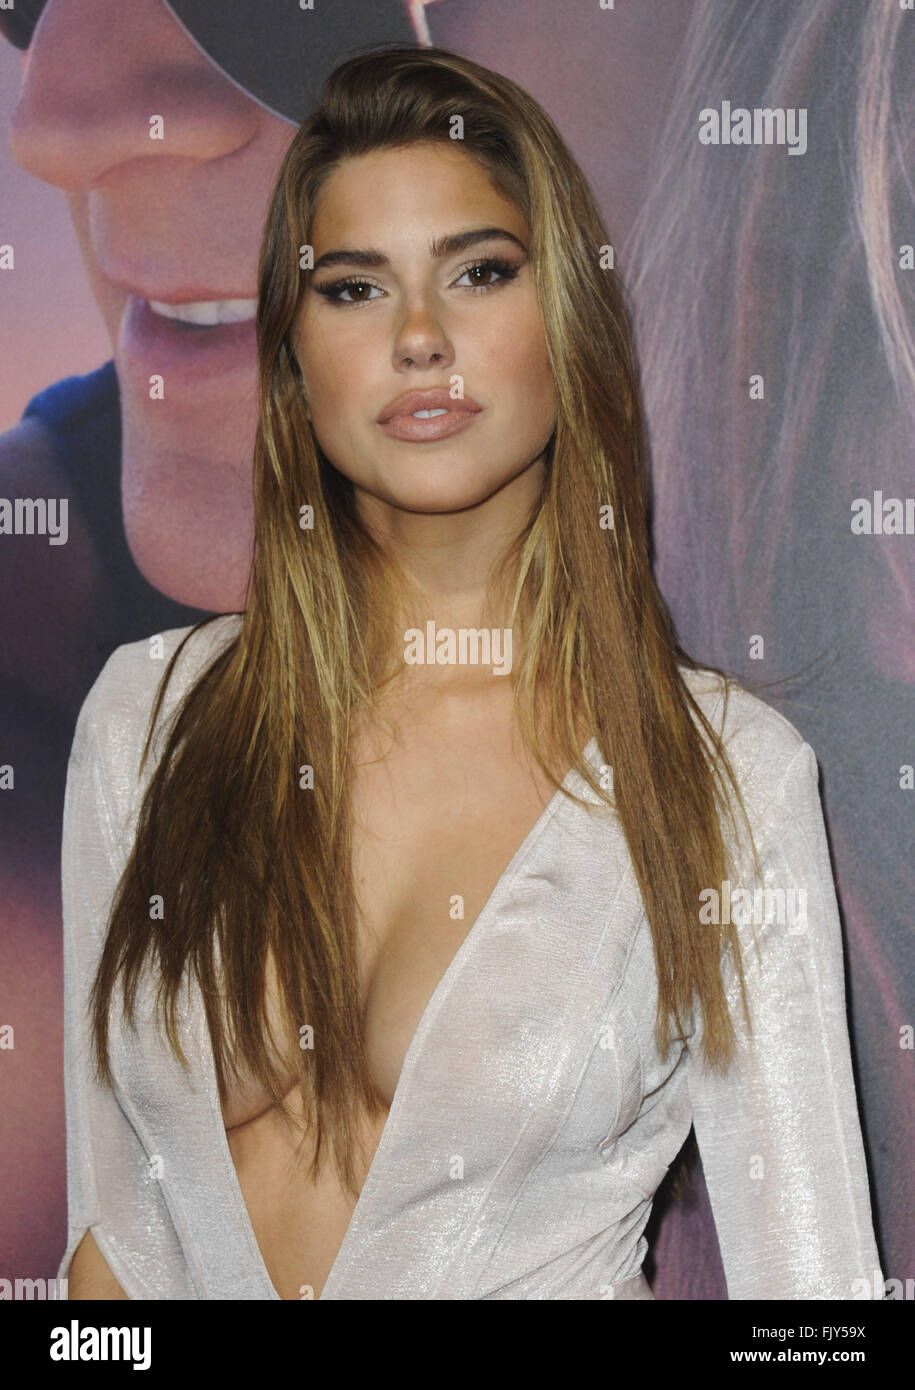 Young Kara Del Toro nudes (85 photo), Pussy, Cleavage, Twitter, braless 2015